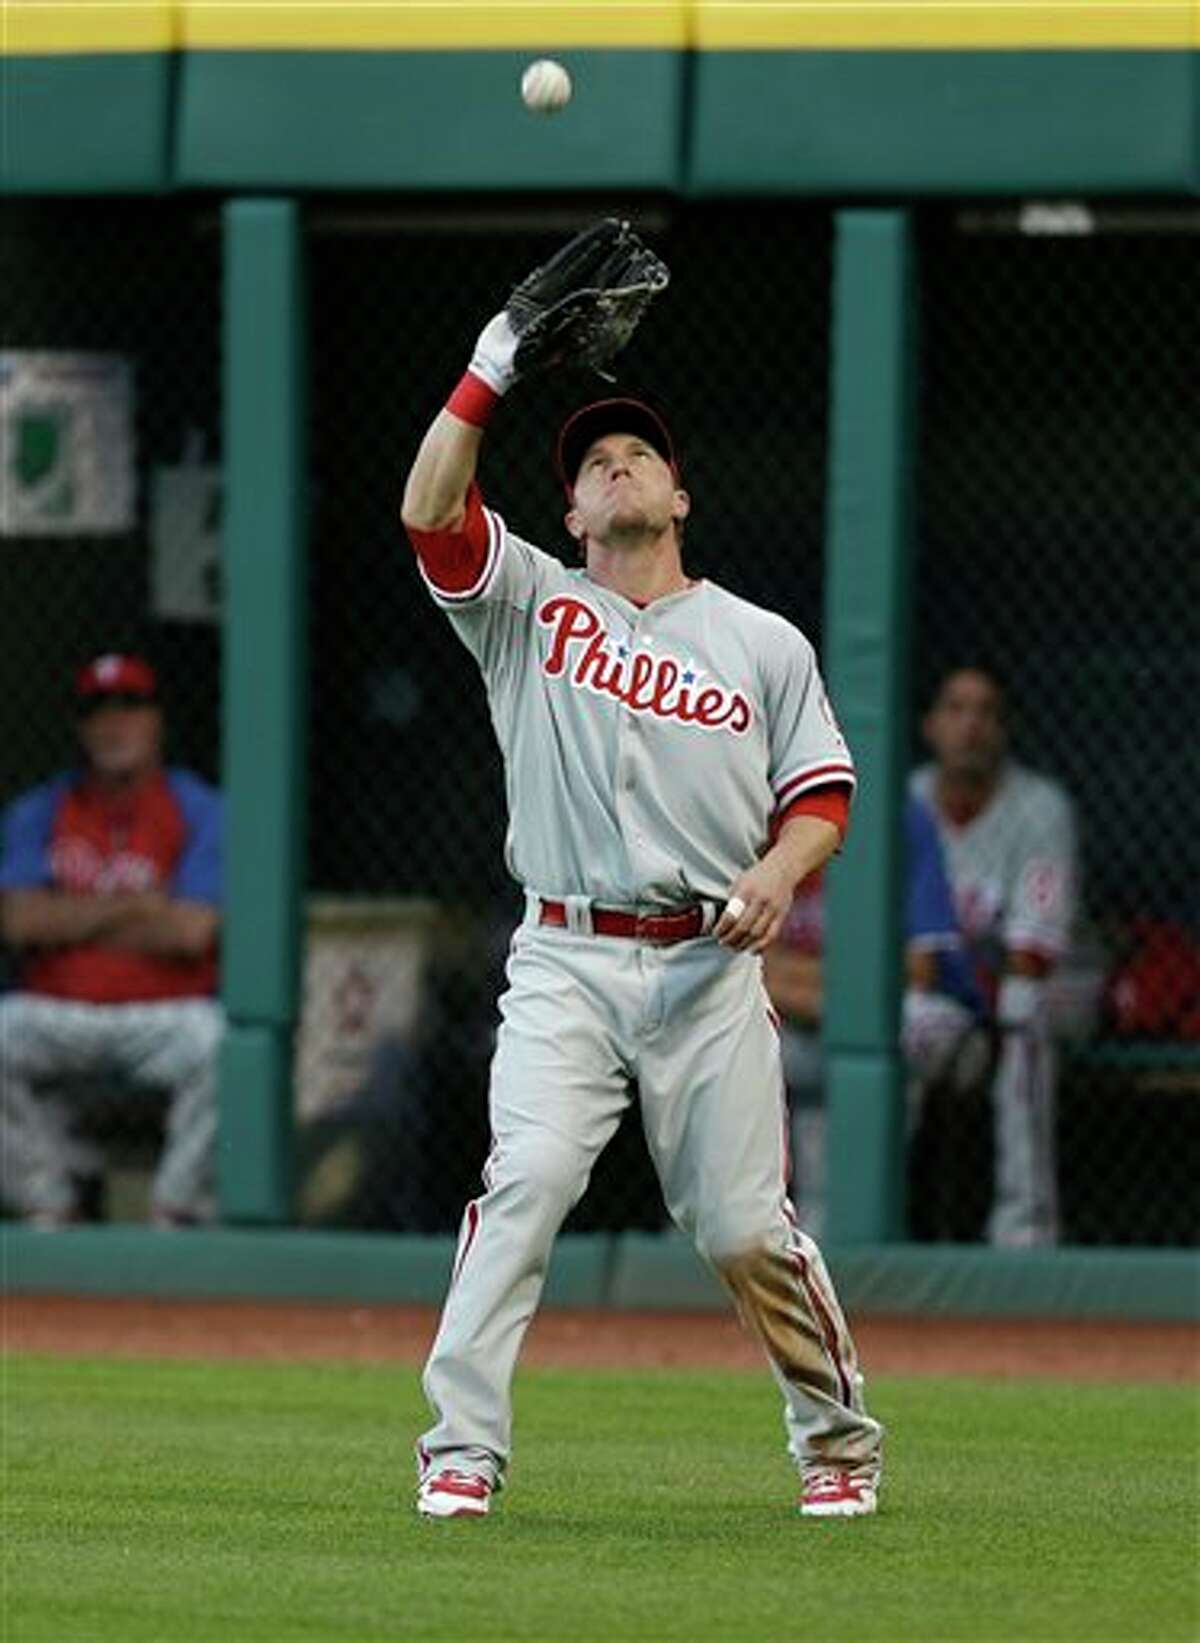 Philadelphia Phillies' Laynce Nix catches a fly ball hit by Cleveland Indians' Mike Aviles during the third inning of a baseball game, Wednesday, May 1, 2013, in Cleveland. (AP Photo/Tony Dejak)